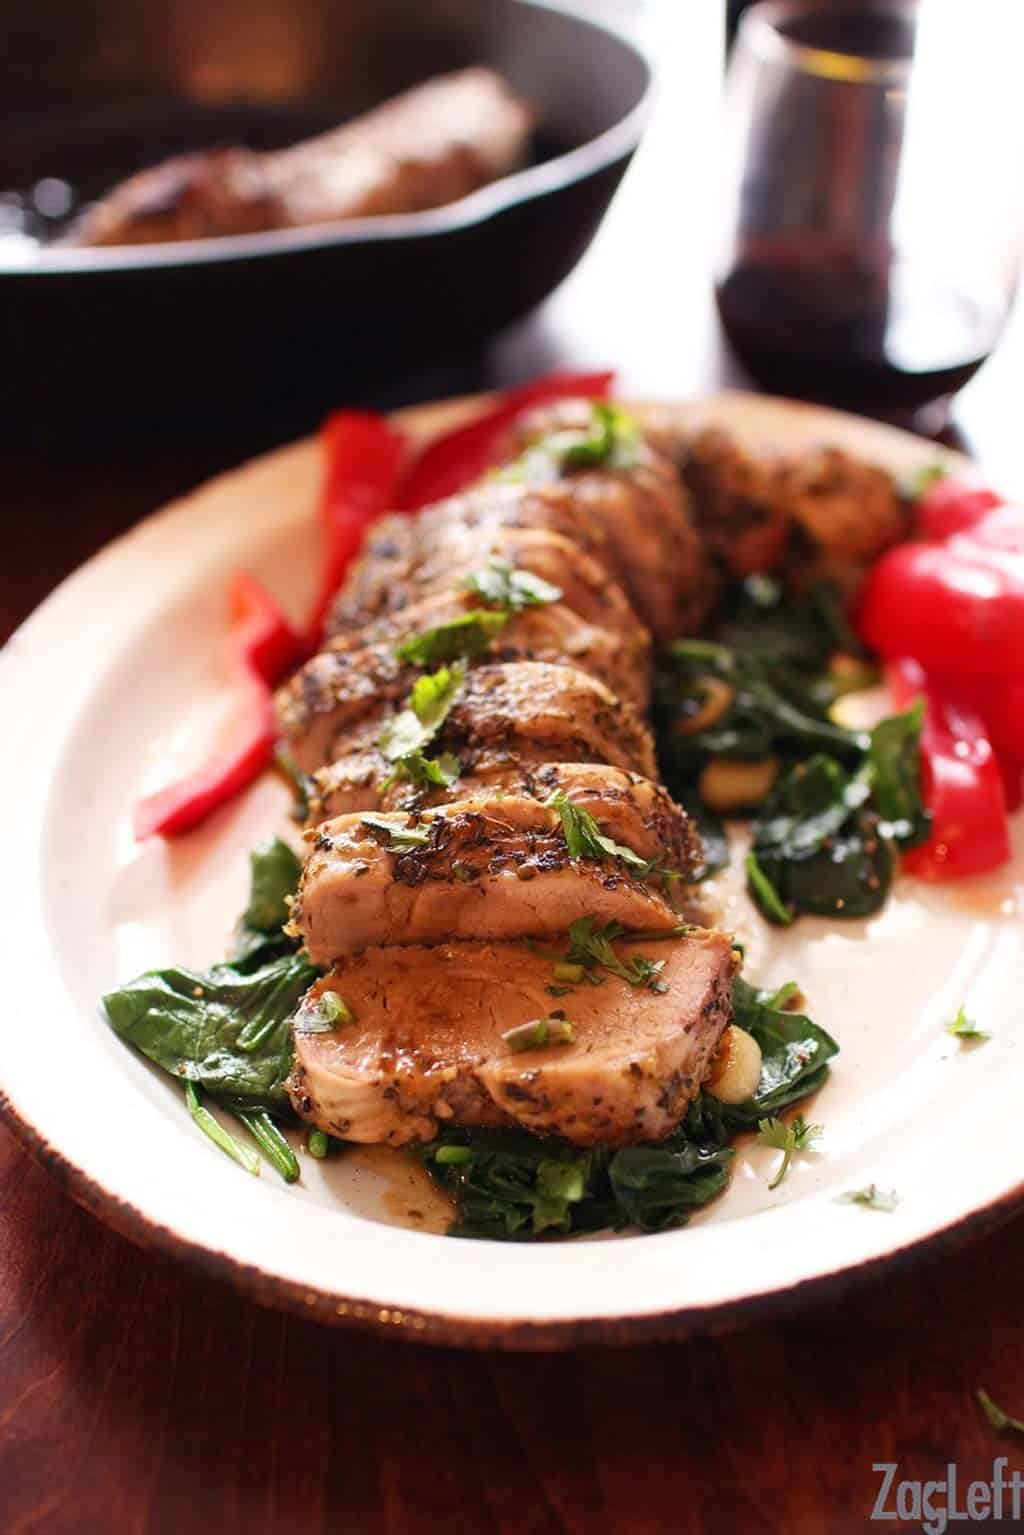 Sliced Herb Crusted Pork Tenderloin coated with a blend of Italian spices and minced garlic on a bed of spinach on a large plate